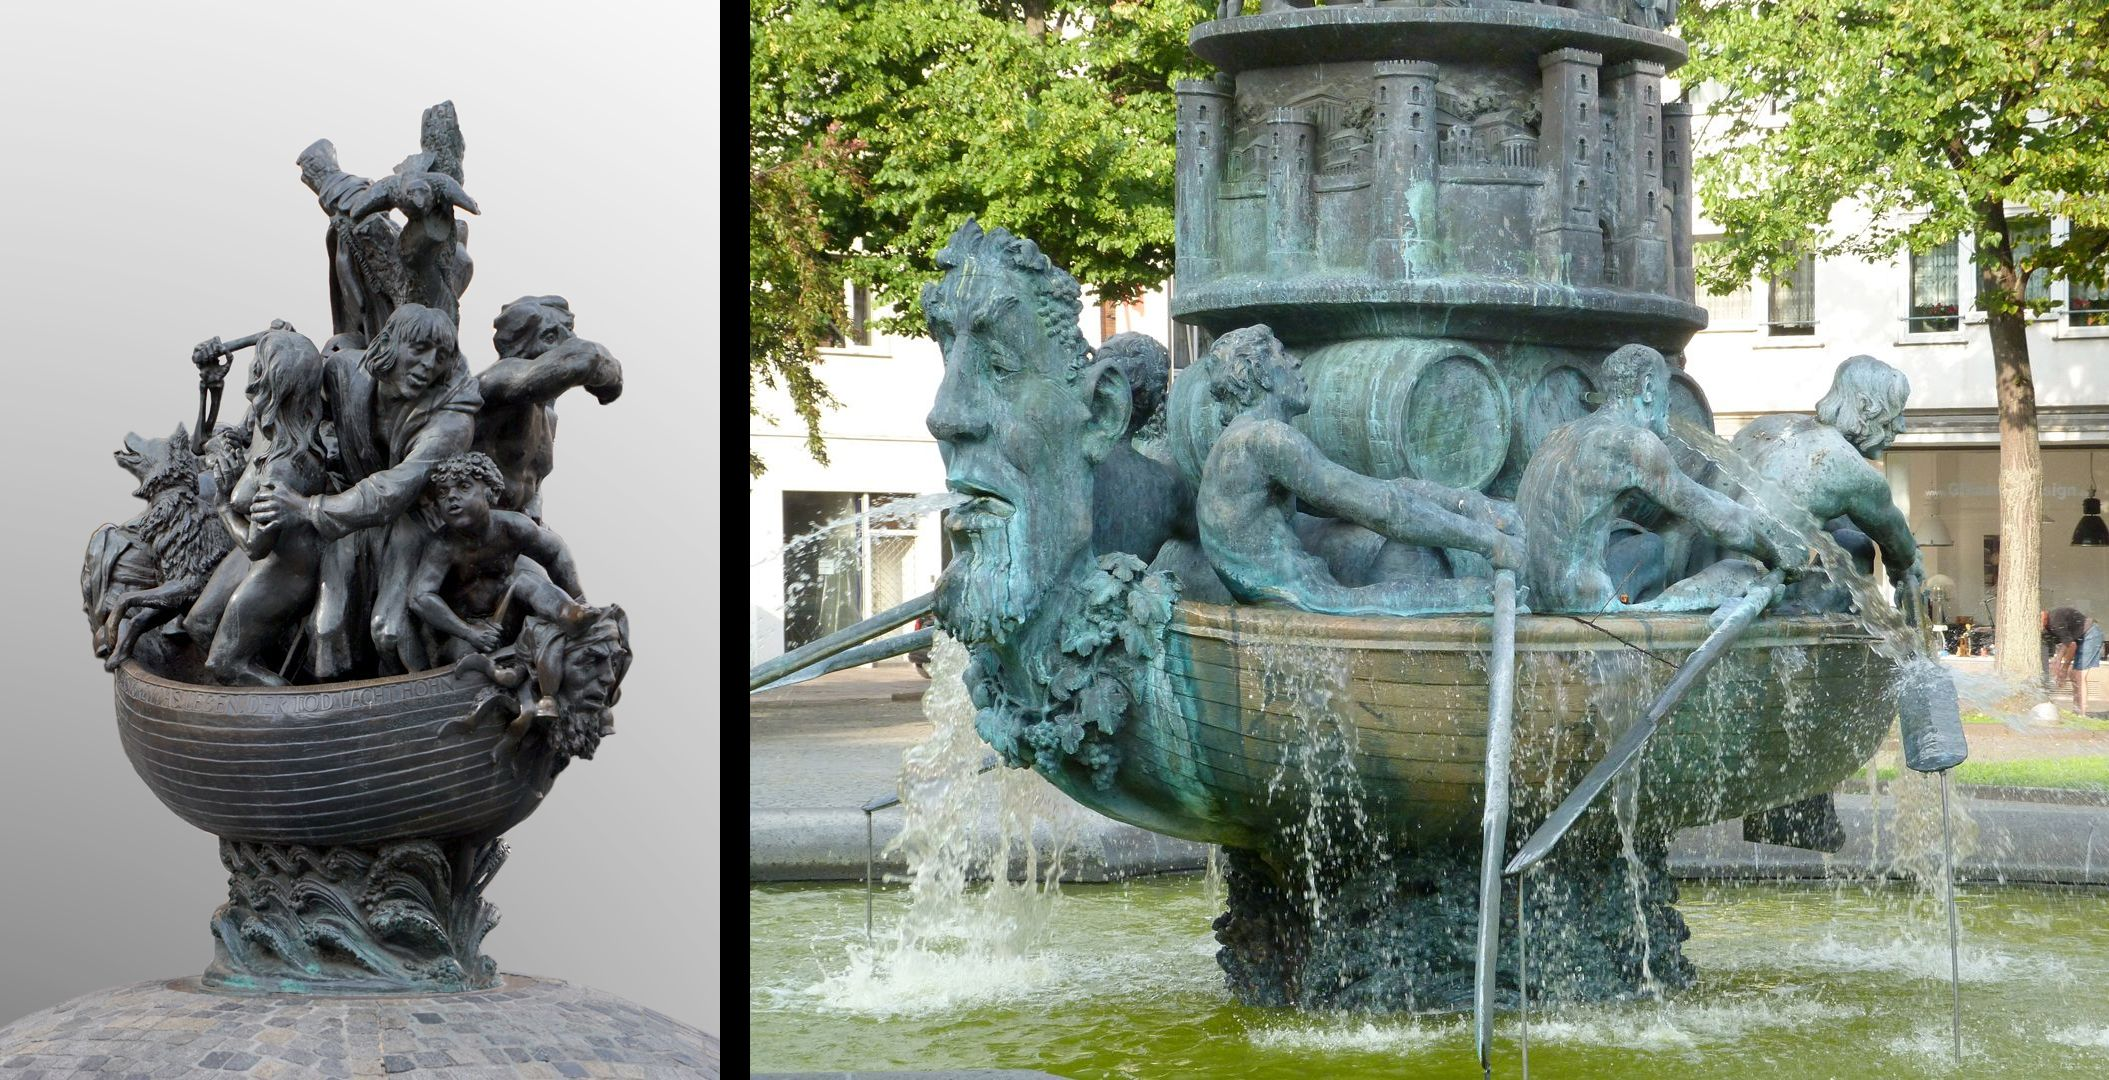 Ship of Fools Originally the Sip of Fools was designed as a fountain/ see for comparison the History Column in Coblenz